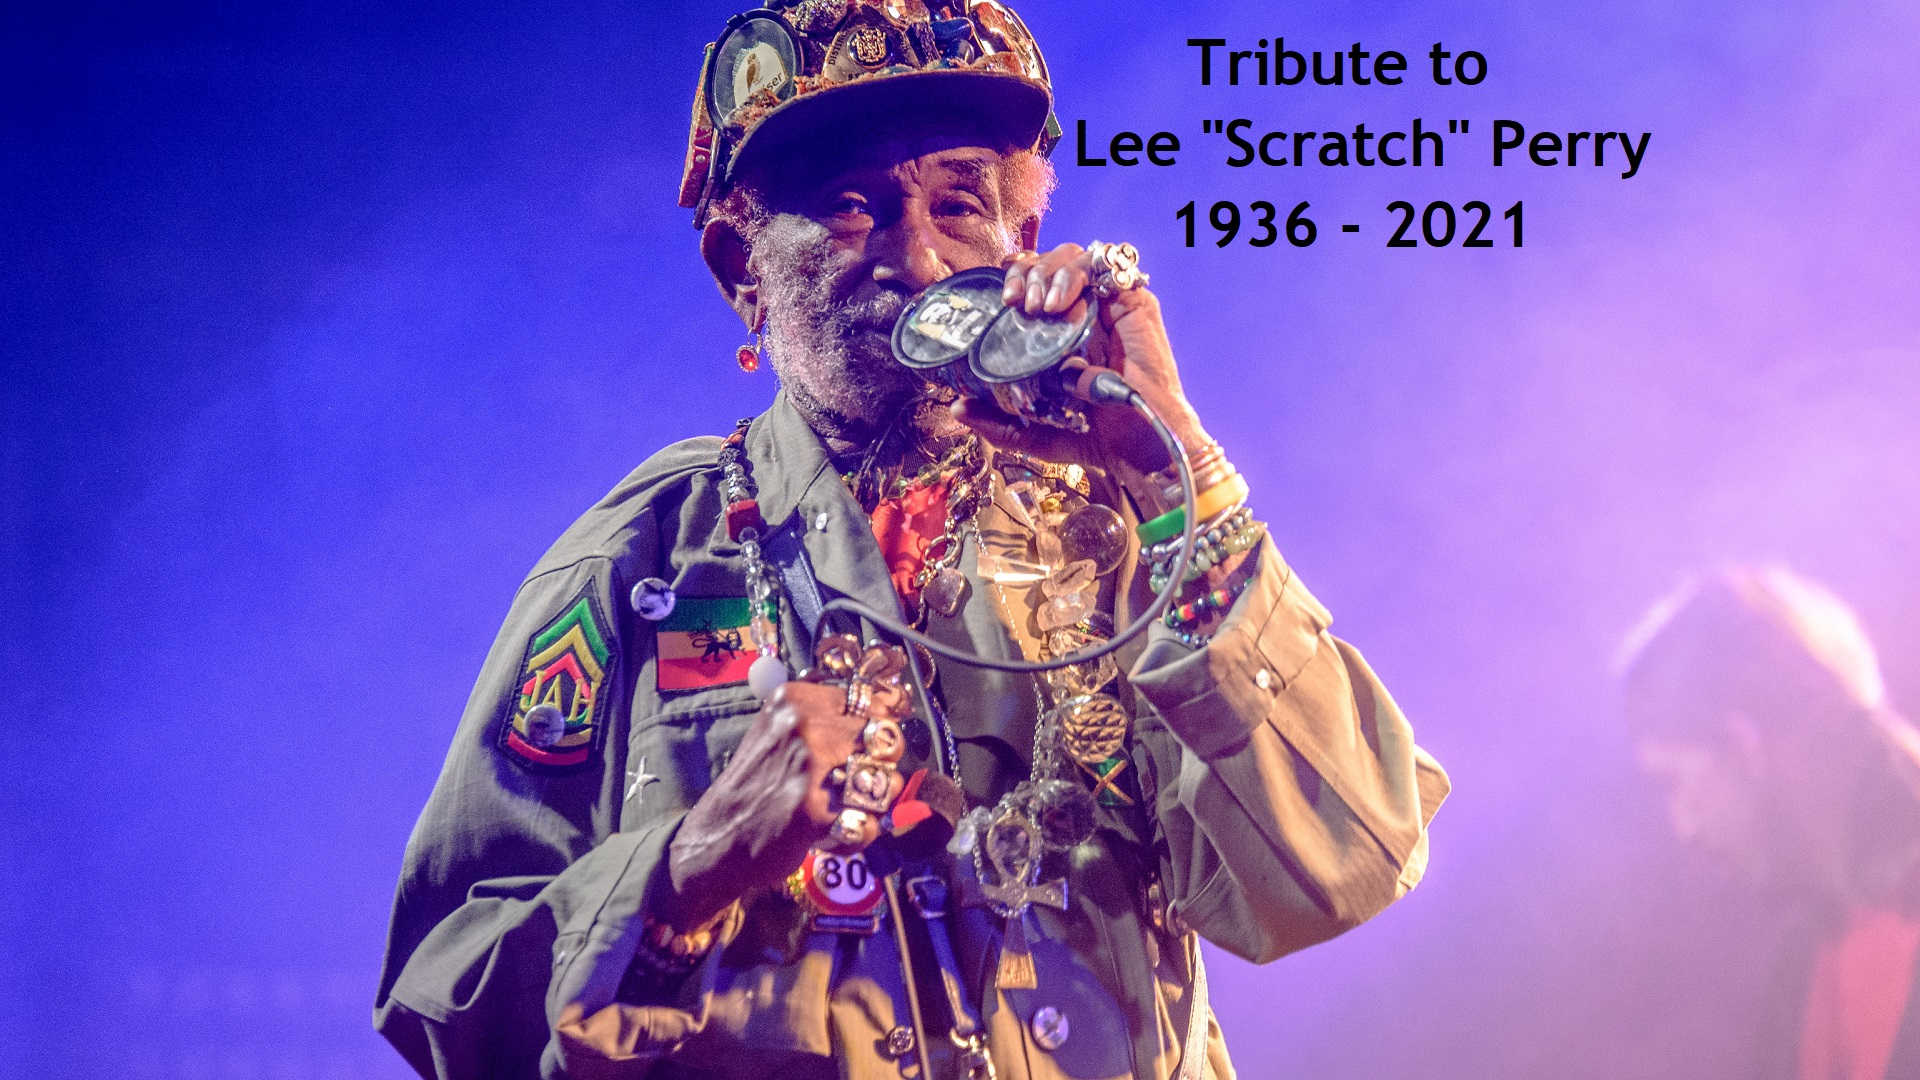 """Tribute to Lee """"Scratch"""" Perry 1936-2021 The image is CC-BY-SA-3.0 by pitpony.photography.de"""